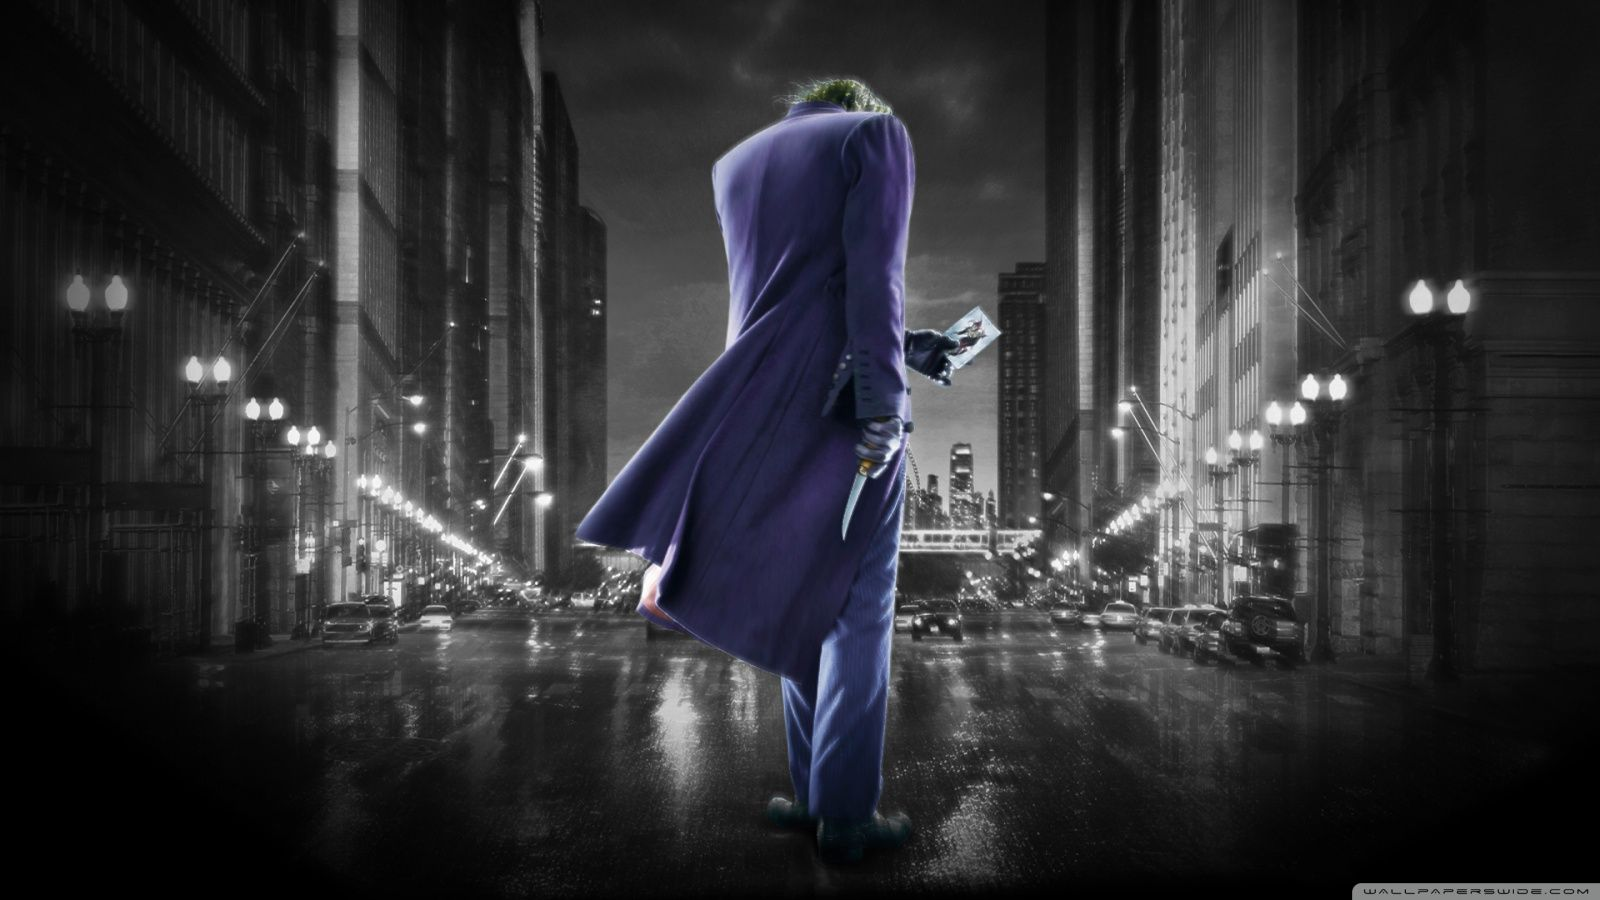 Joker Hd Desktop Wallpaper High Definition Fullscreen Mobile Joker Wallpapers Joker Pics Batman Wallpaper